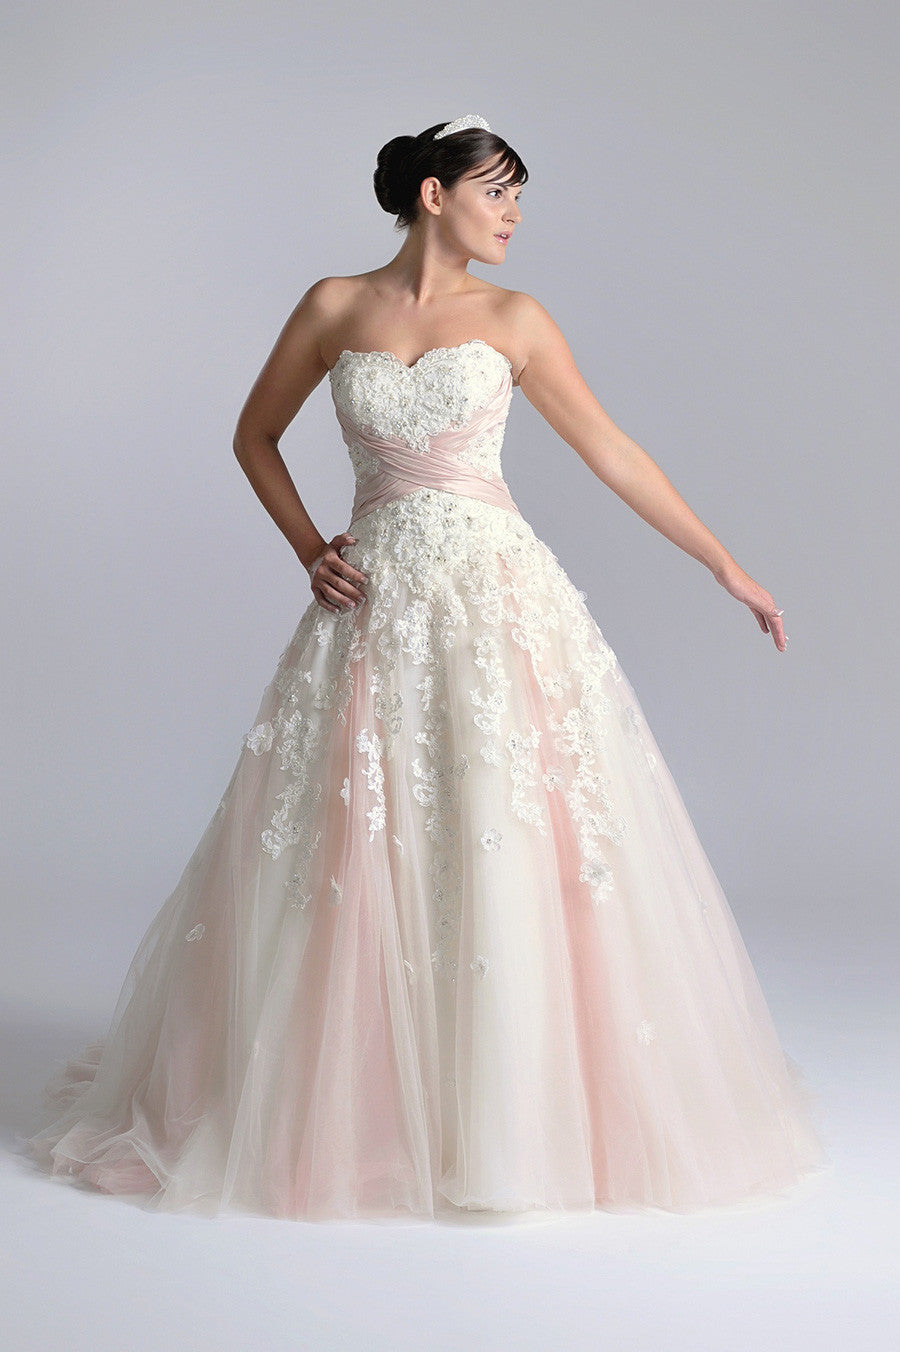 Chelsea Wedding Dress from the Donna Lee Brides collection